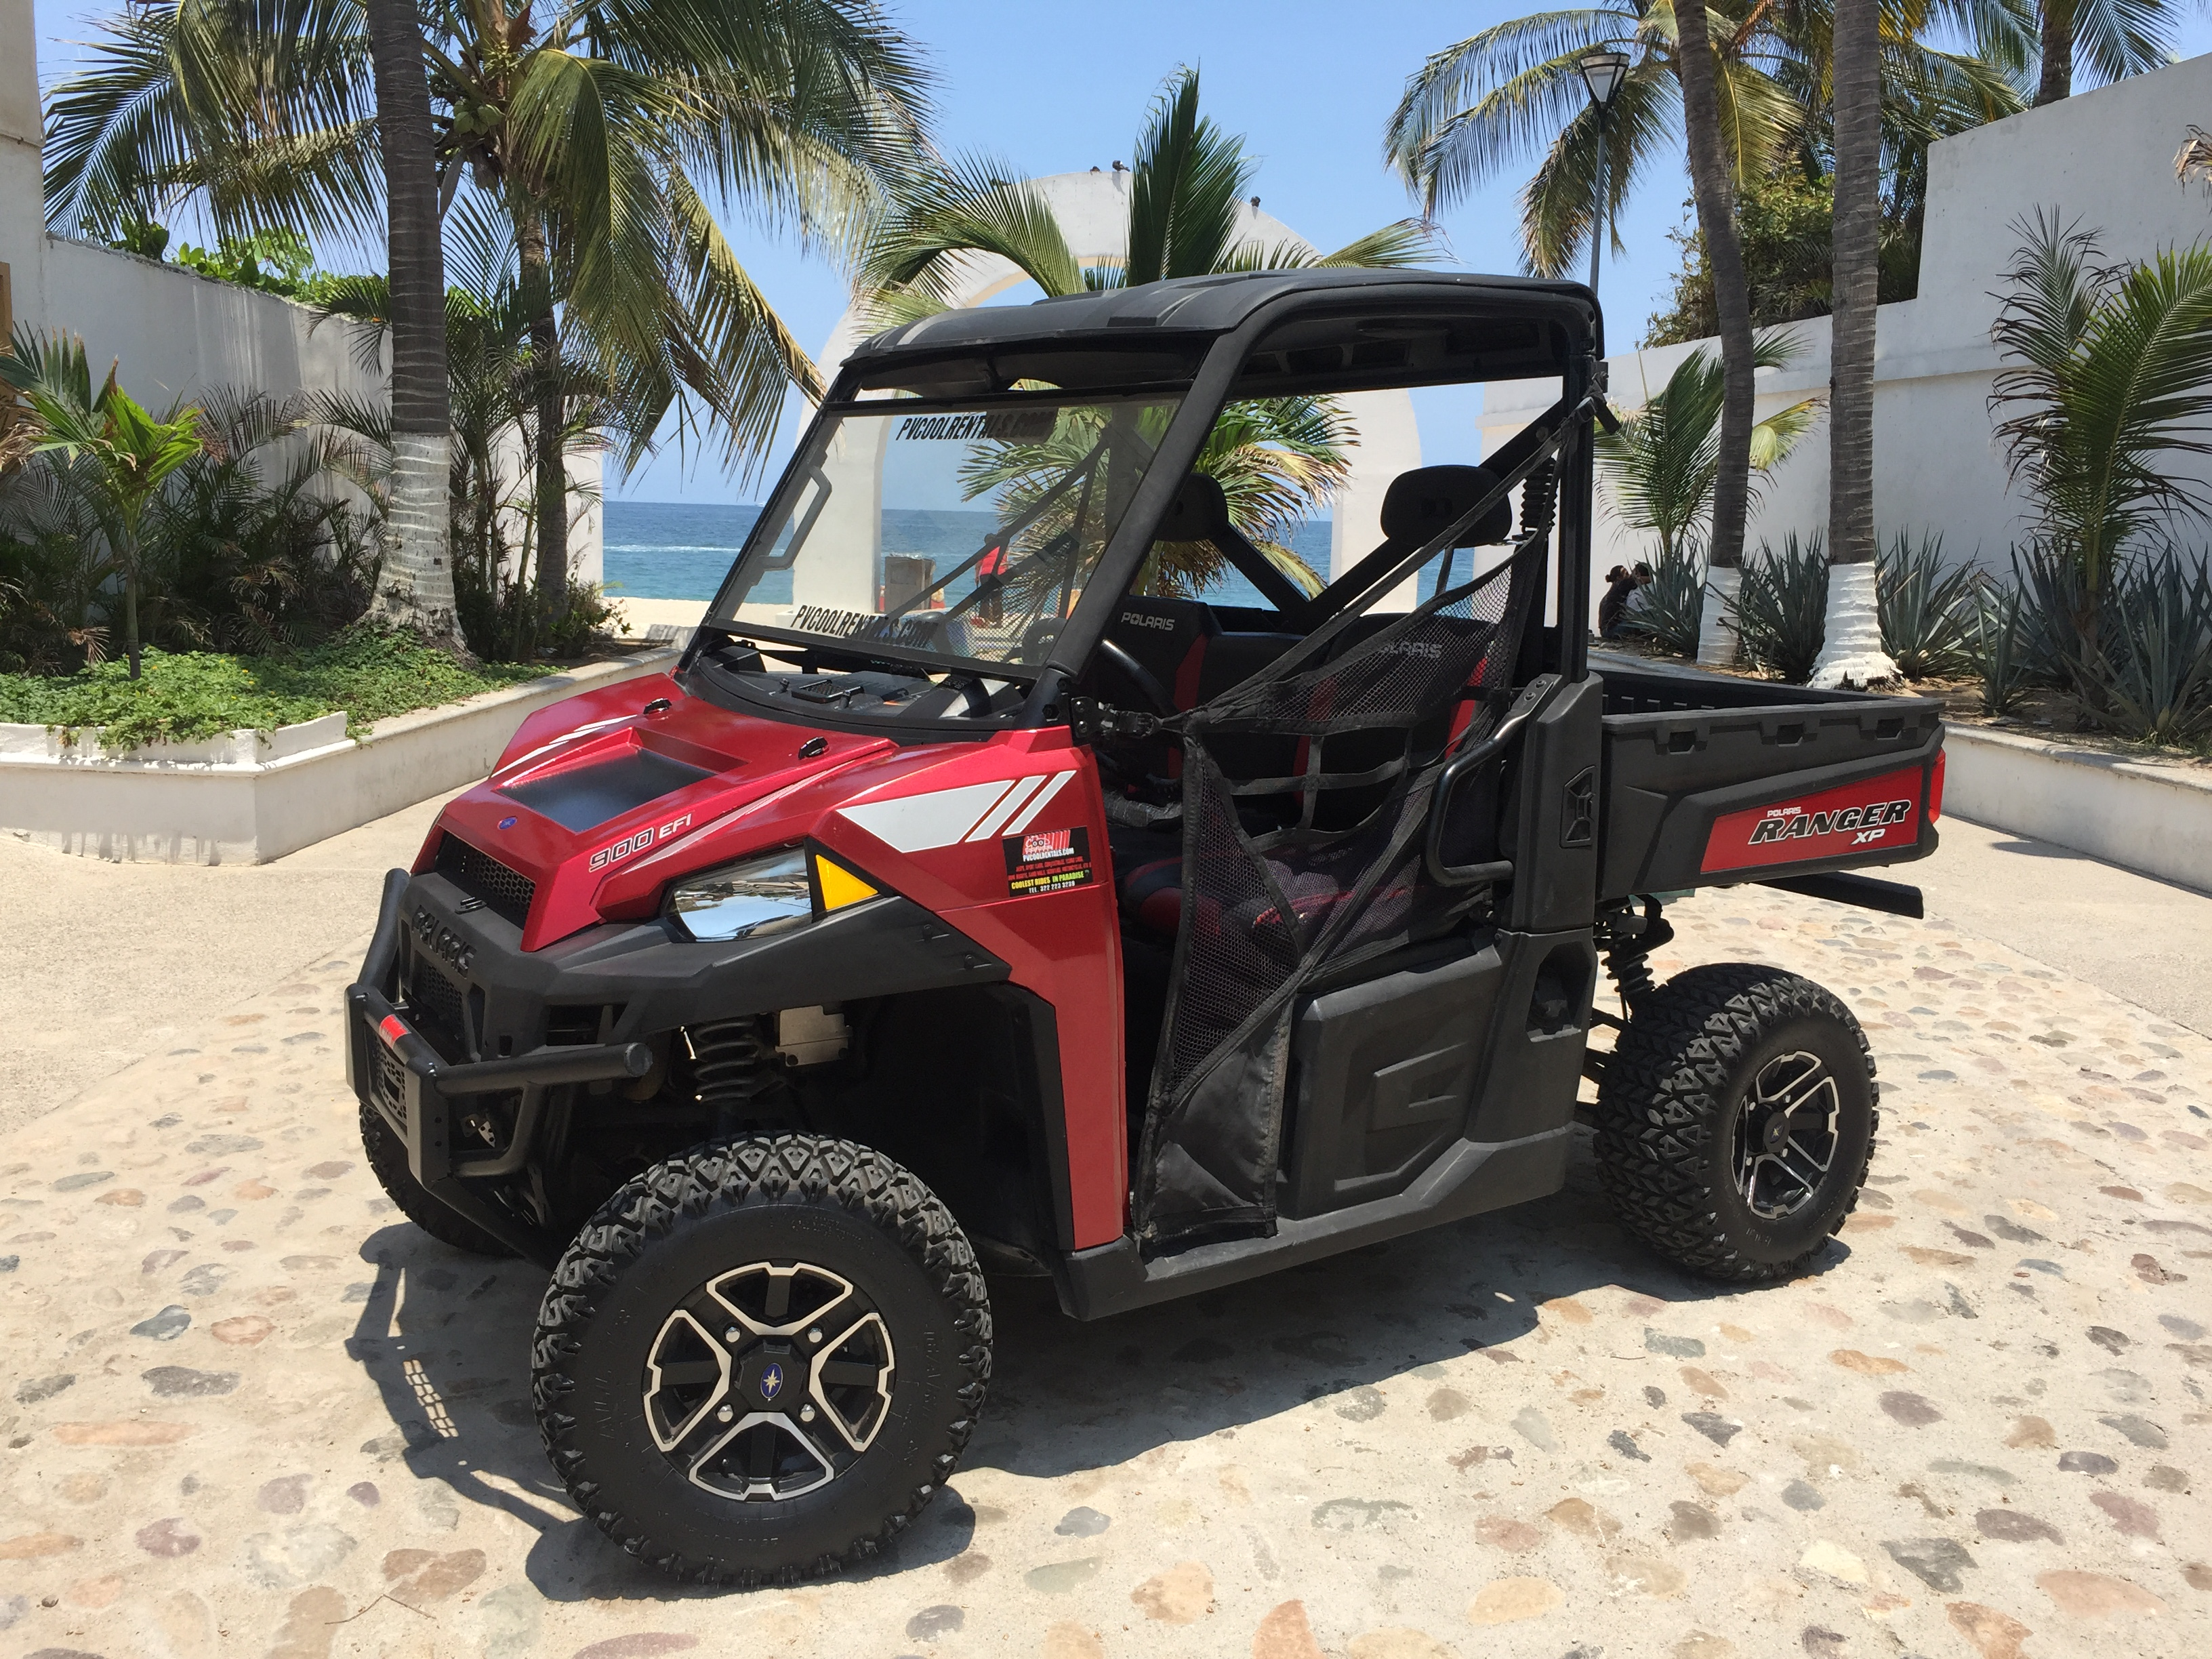 Off road rentals puerto vallarta